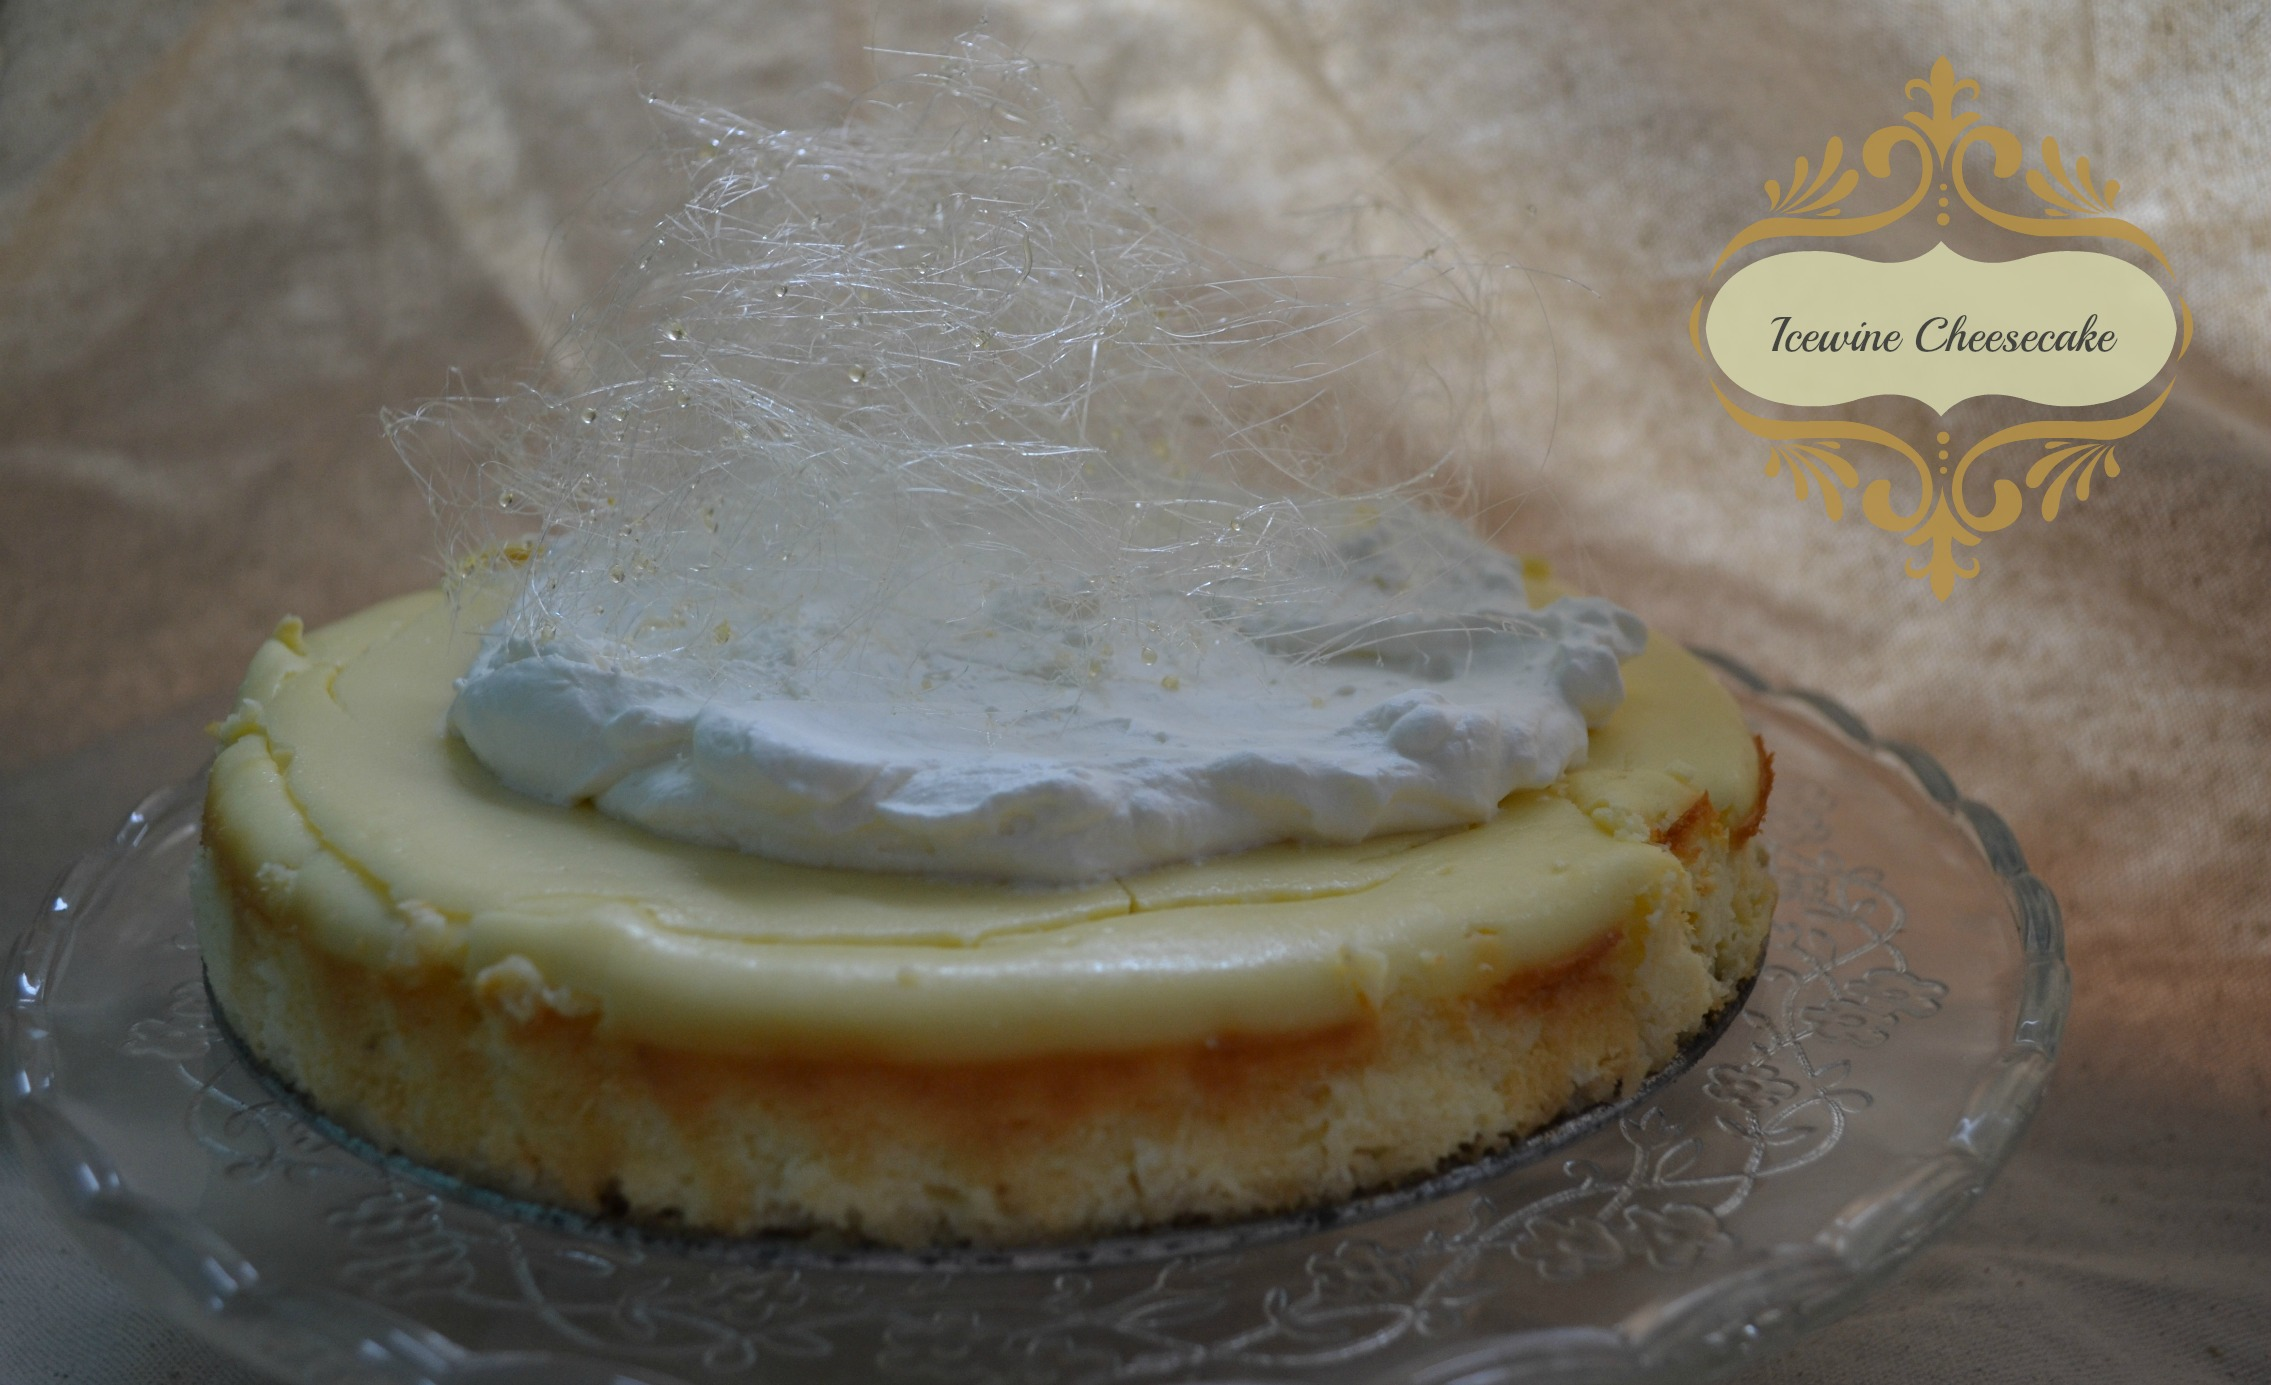 Icewine Cheesecake Topped With Sparkly Spun Sugar